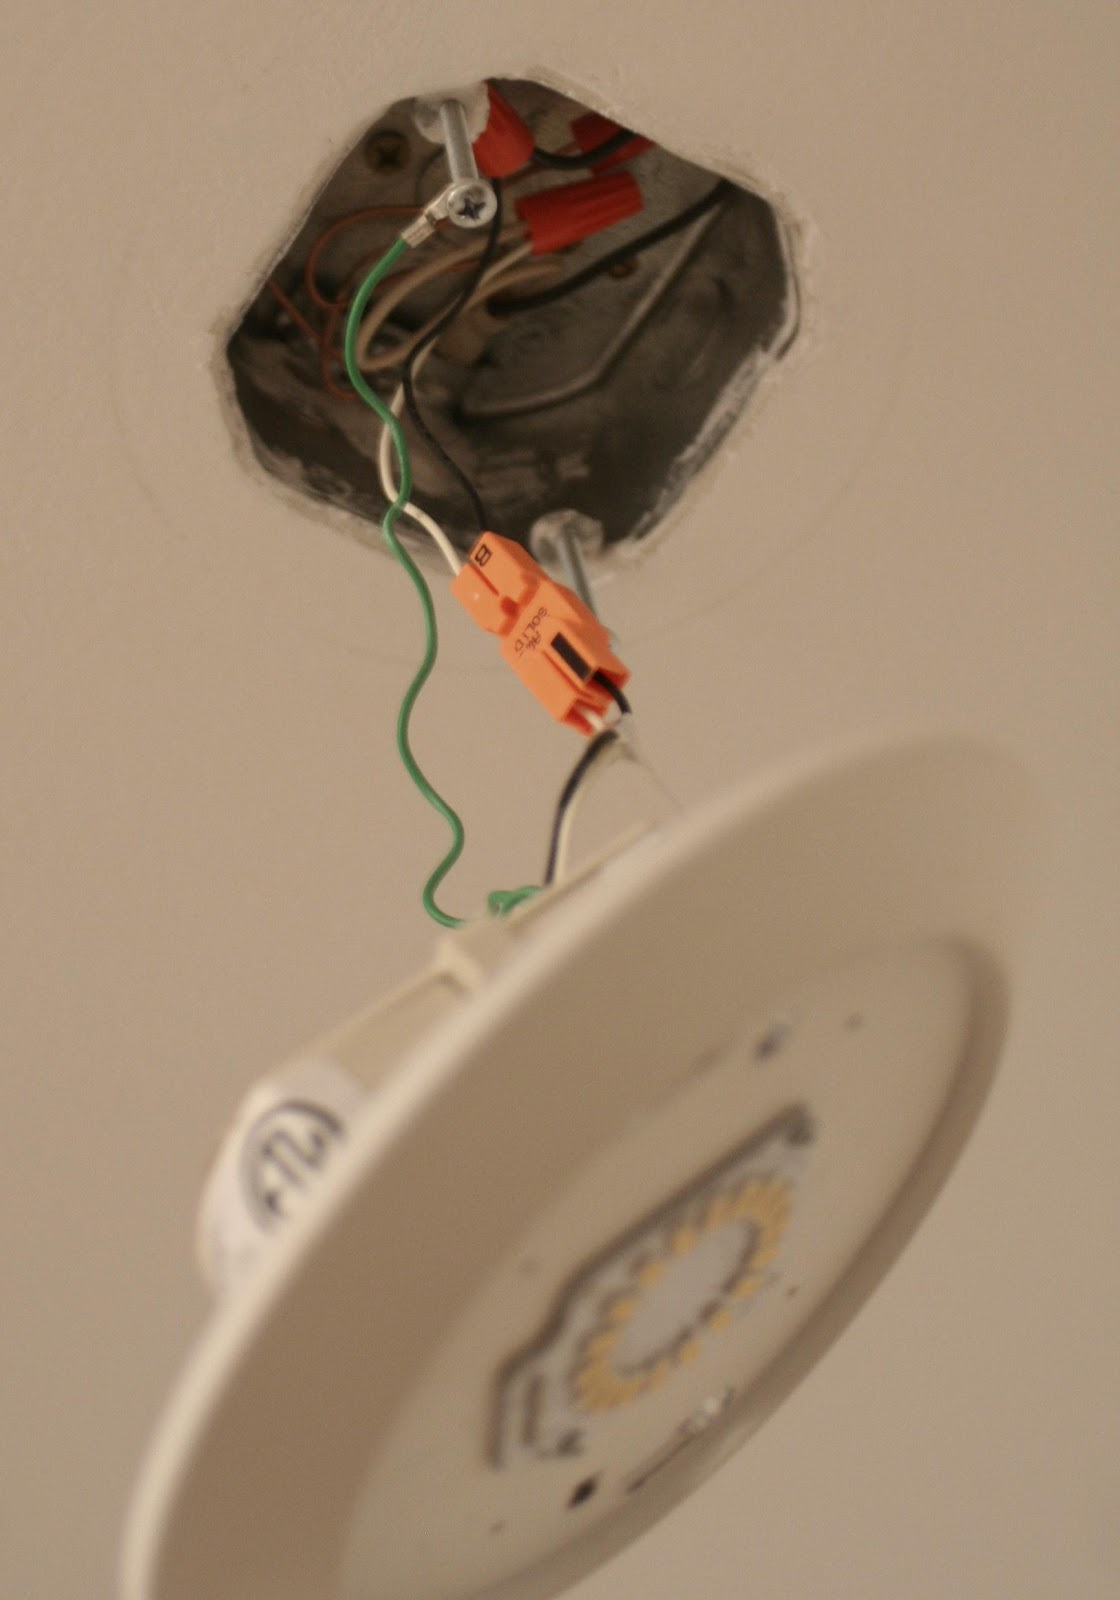 Photocell Override Will This Circuit Be Ok besides Is It Possible To Control 3 Light Fixtures With 4 Switches besides Gibson P 90 Pickup Wiring Diagram furthermore LJ12A3 4 J EZ LJ12A3 2 J EZ AC infrared proximity sensor 2 WIRE proximity switch NO metal sensor furthermore 5112072184. on 3 way switch wiring diagram